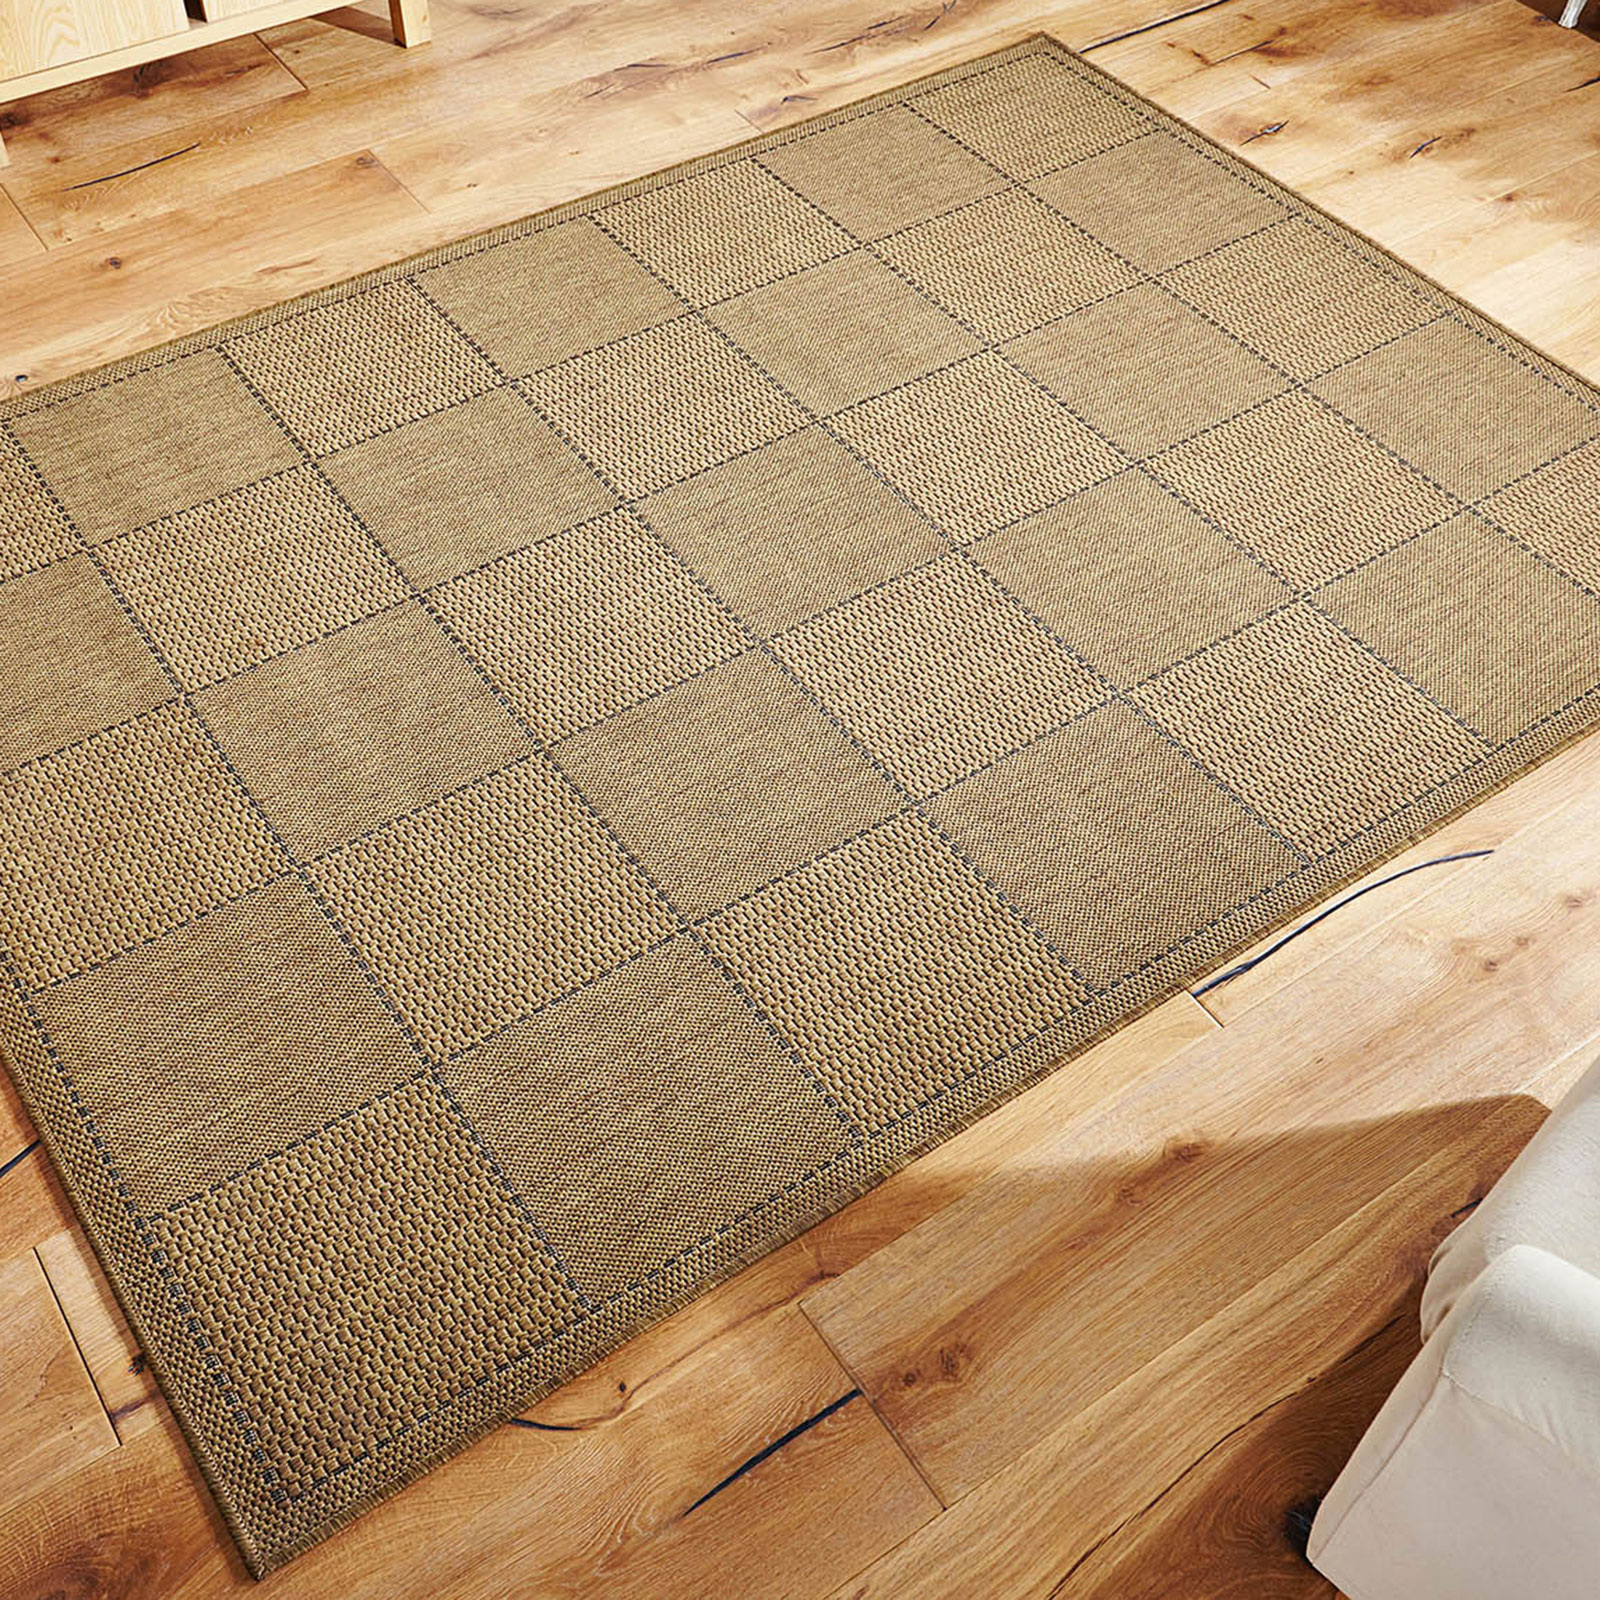 CHECKED FLATWEAVE - BROWN